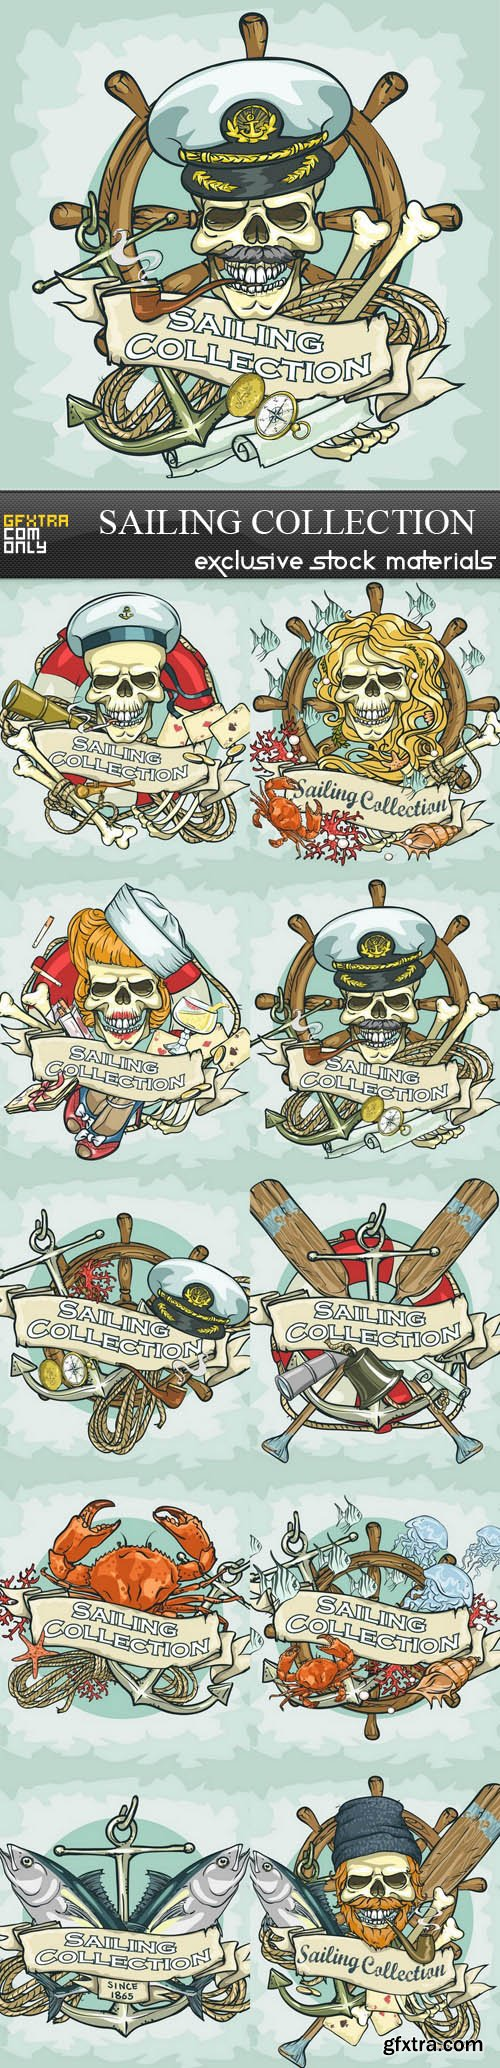 Sailing Collection - 10xEPS